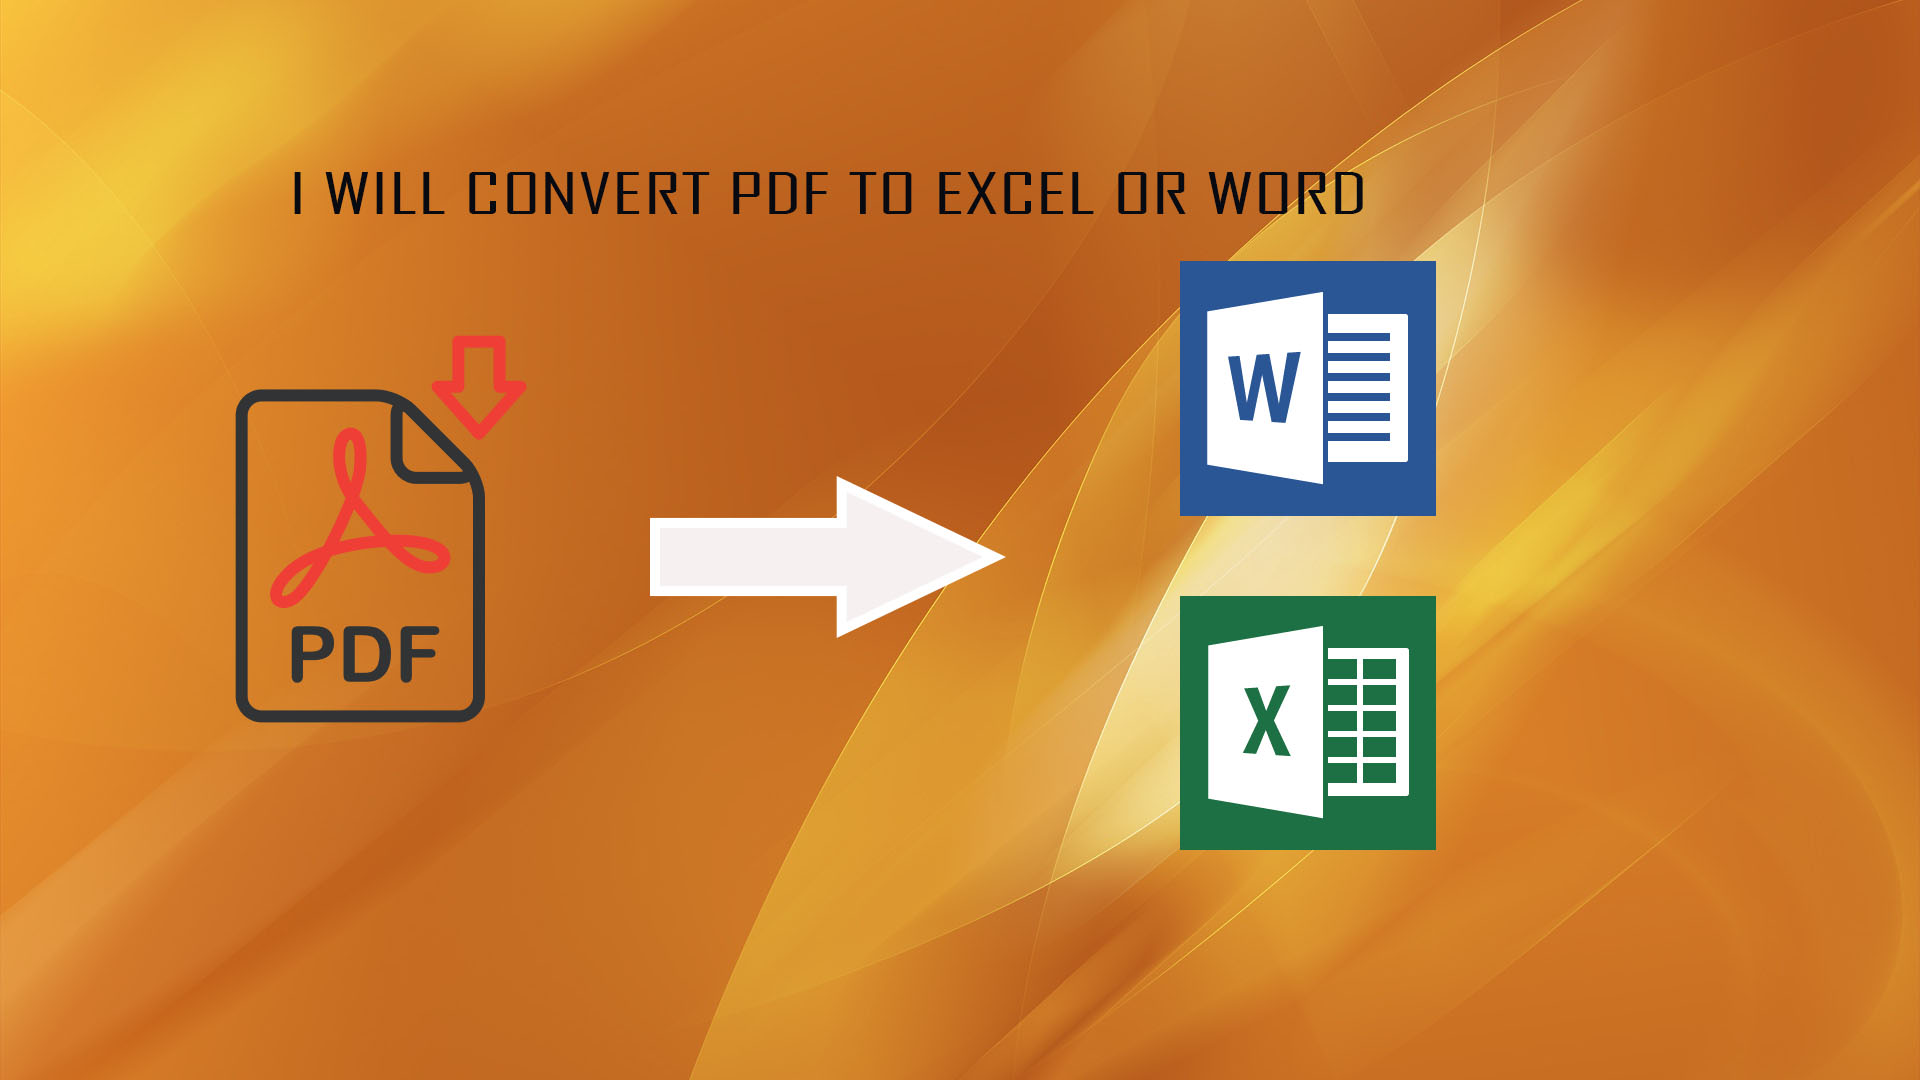 I will Convert PDF to Word or Excel Quickly